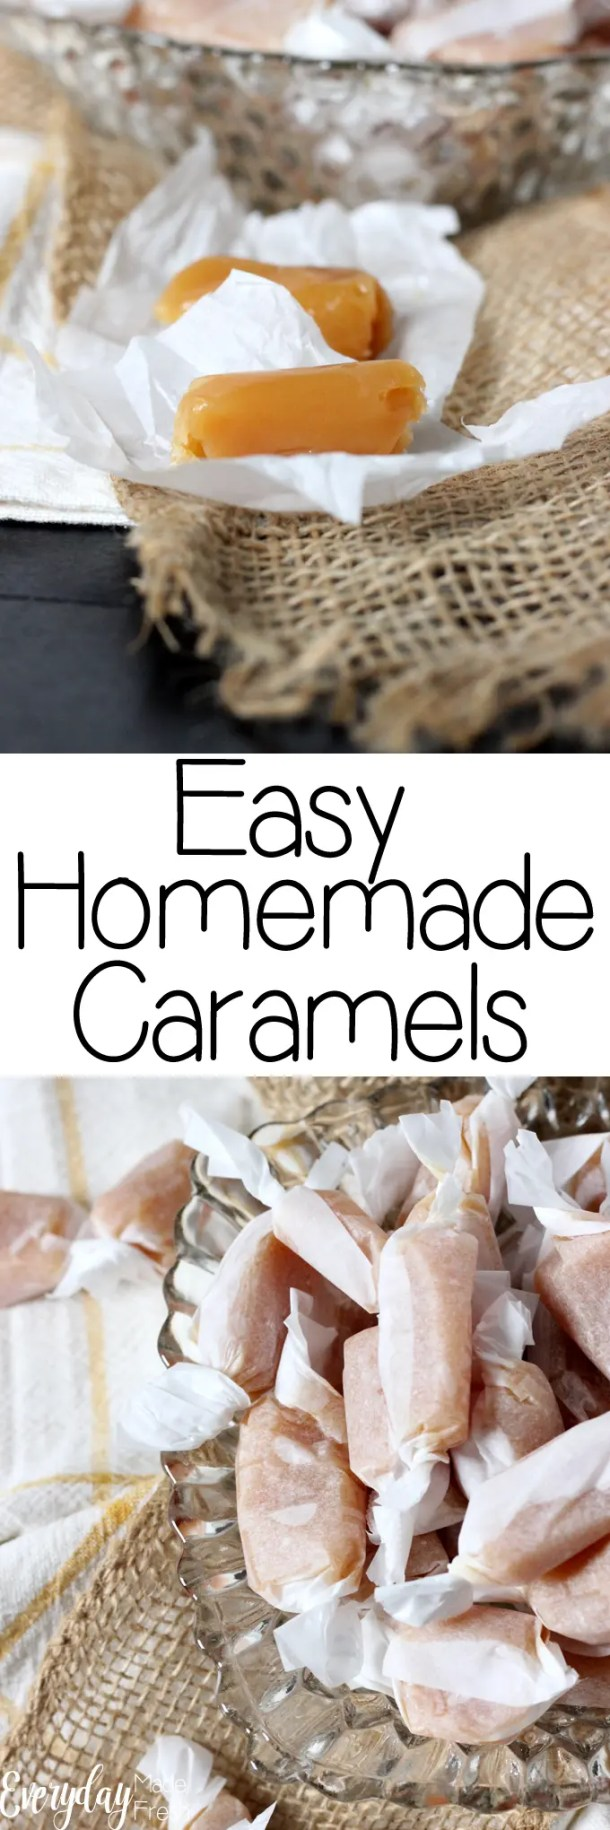 These Easy Homemade Caramels are soft and chewy, and ready to indulge in 30 minutes. This makes an excellent gift or to keep for yourself!   EverydayMadeFresh.com